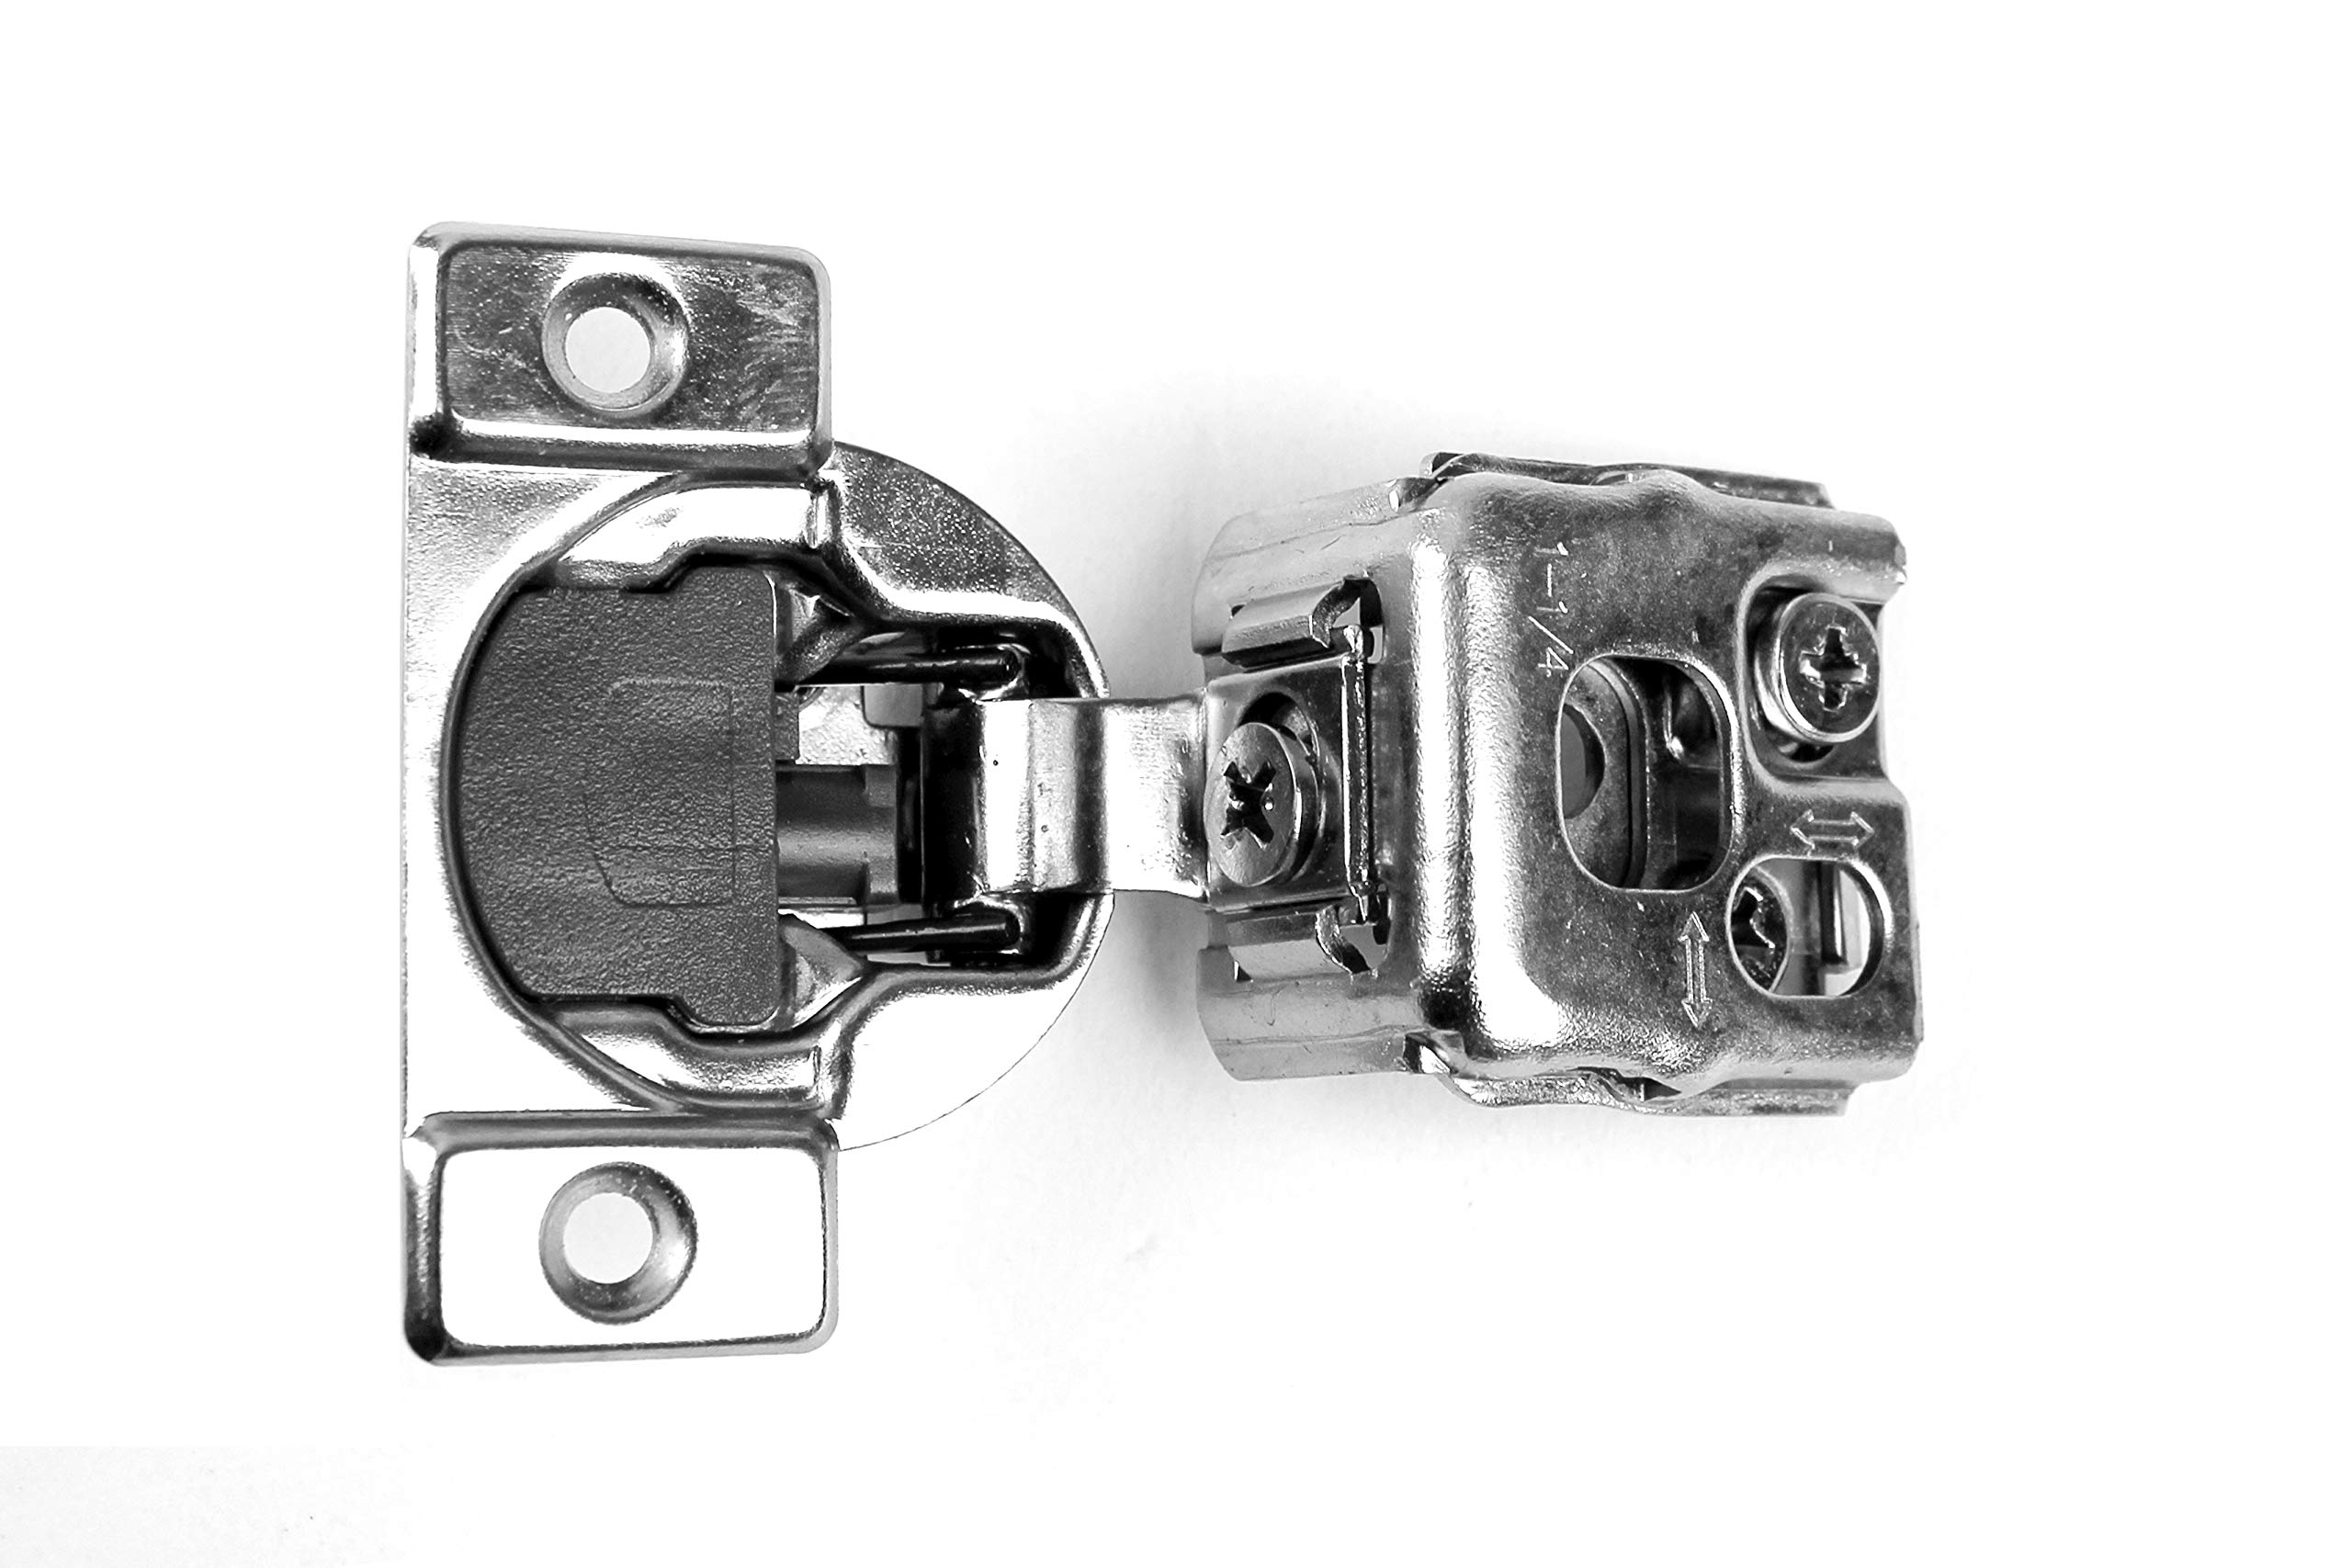 20 Pack Berta 6-Ways 3-cam Adjustment, 1 1/4'' Overlay Cabinet Door Hinges with Built-in Soft Close -105 Degree with Screws